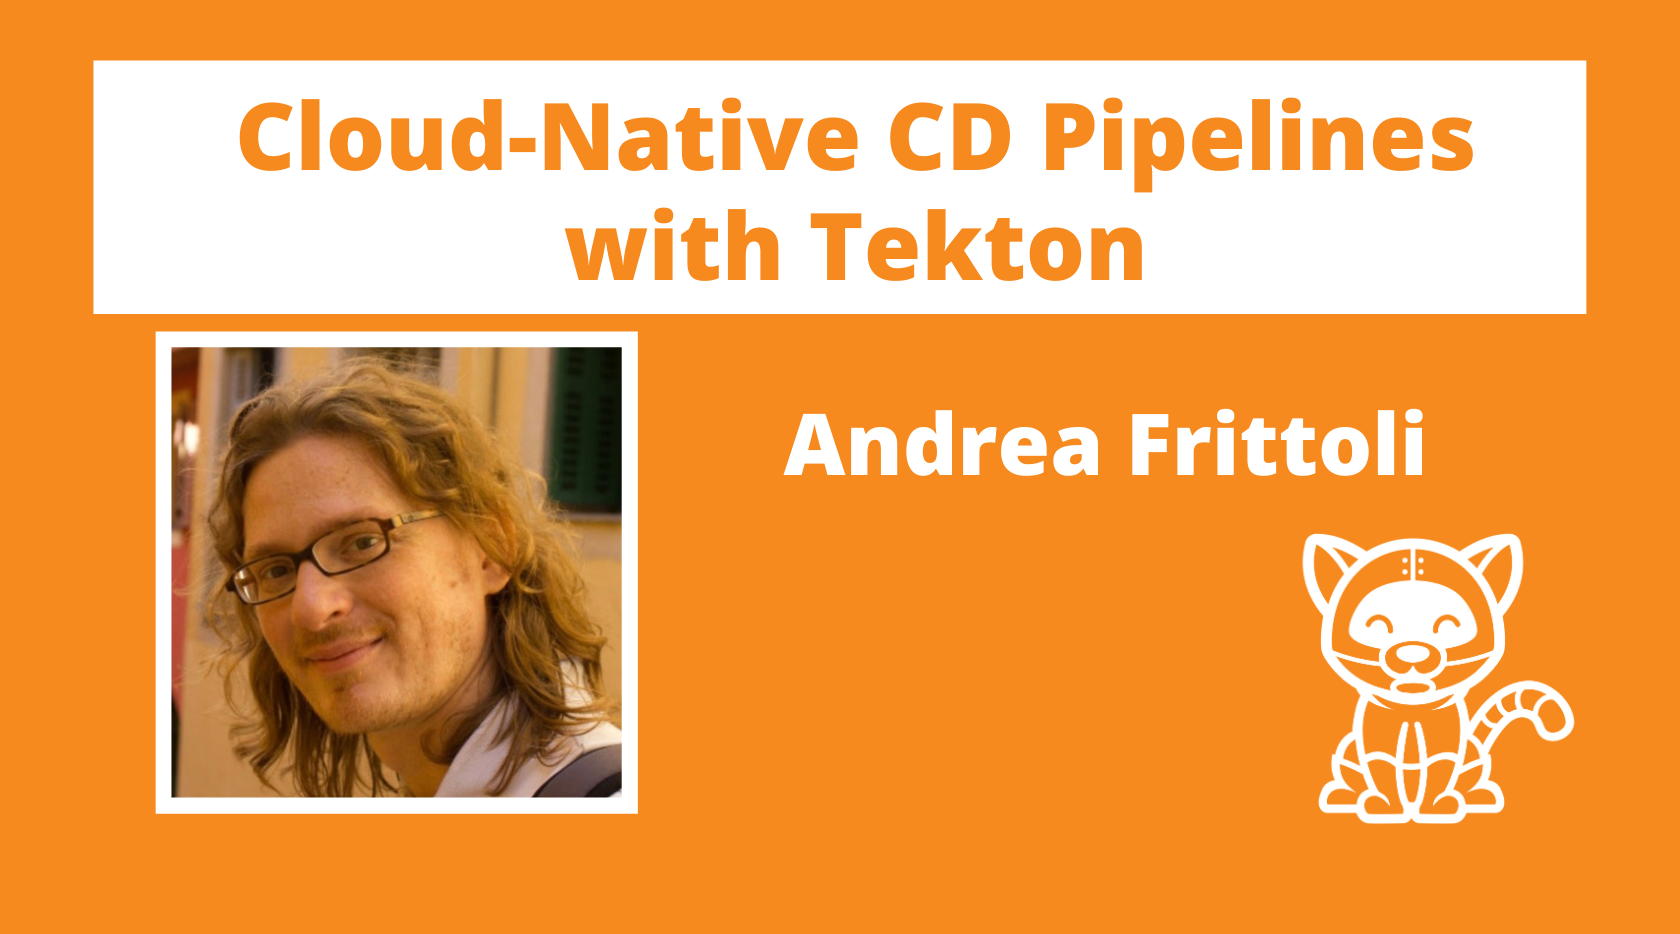 Cloud-Native CD Pipelines with Tekton